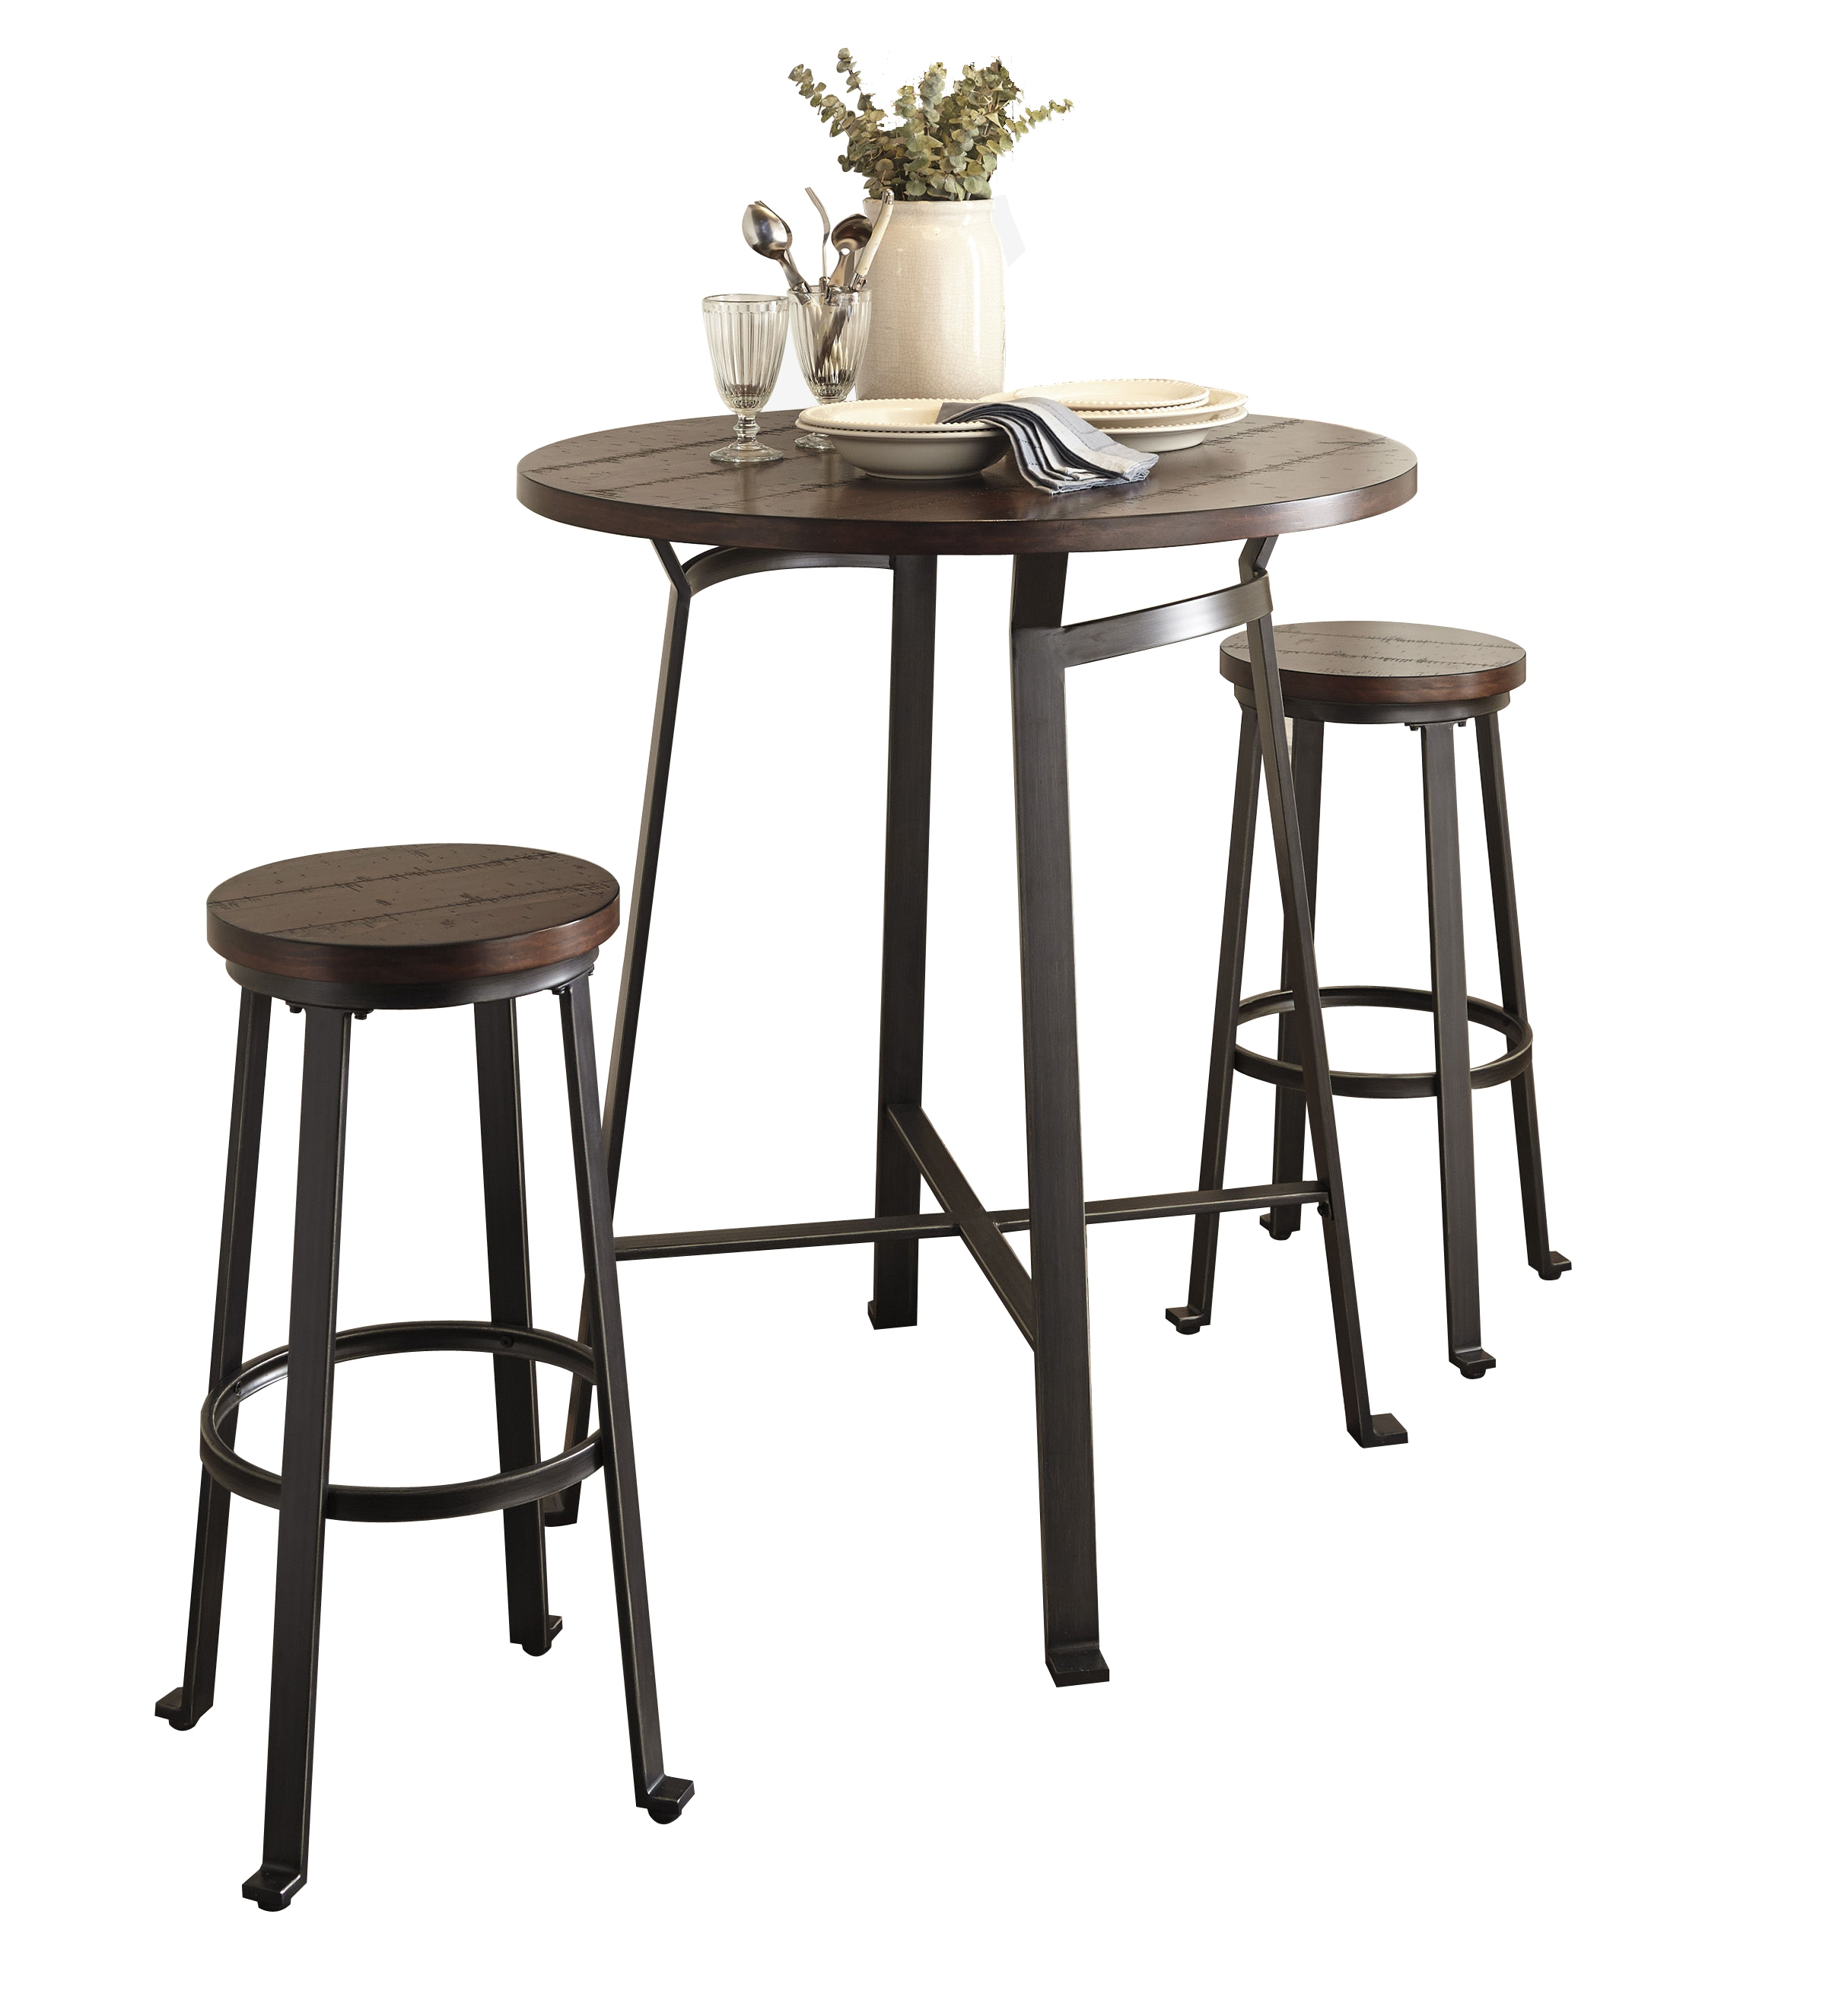 Ashley Furniture Challiman 3pc Bar Height Set The Classy